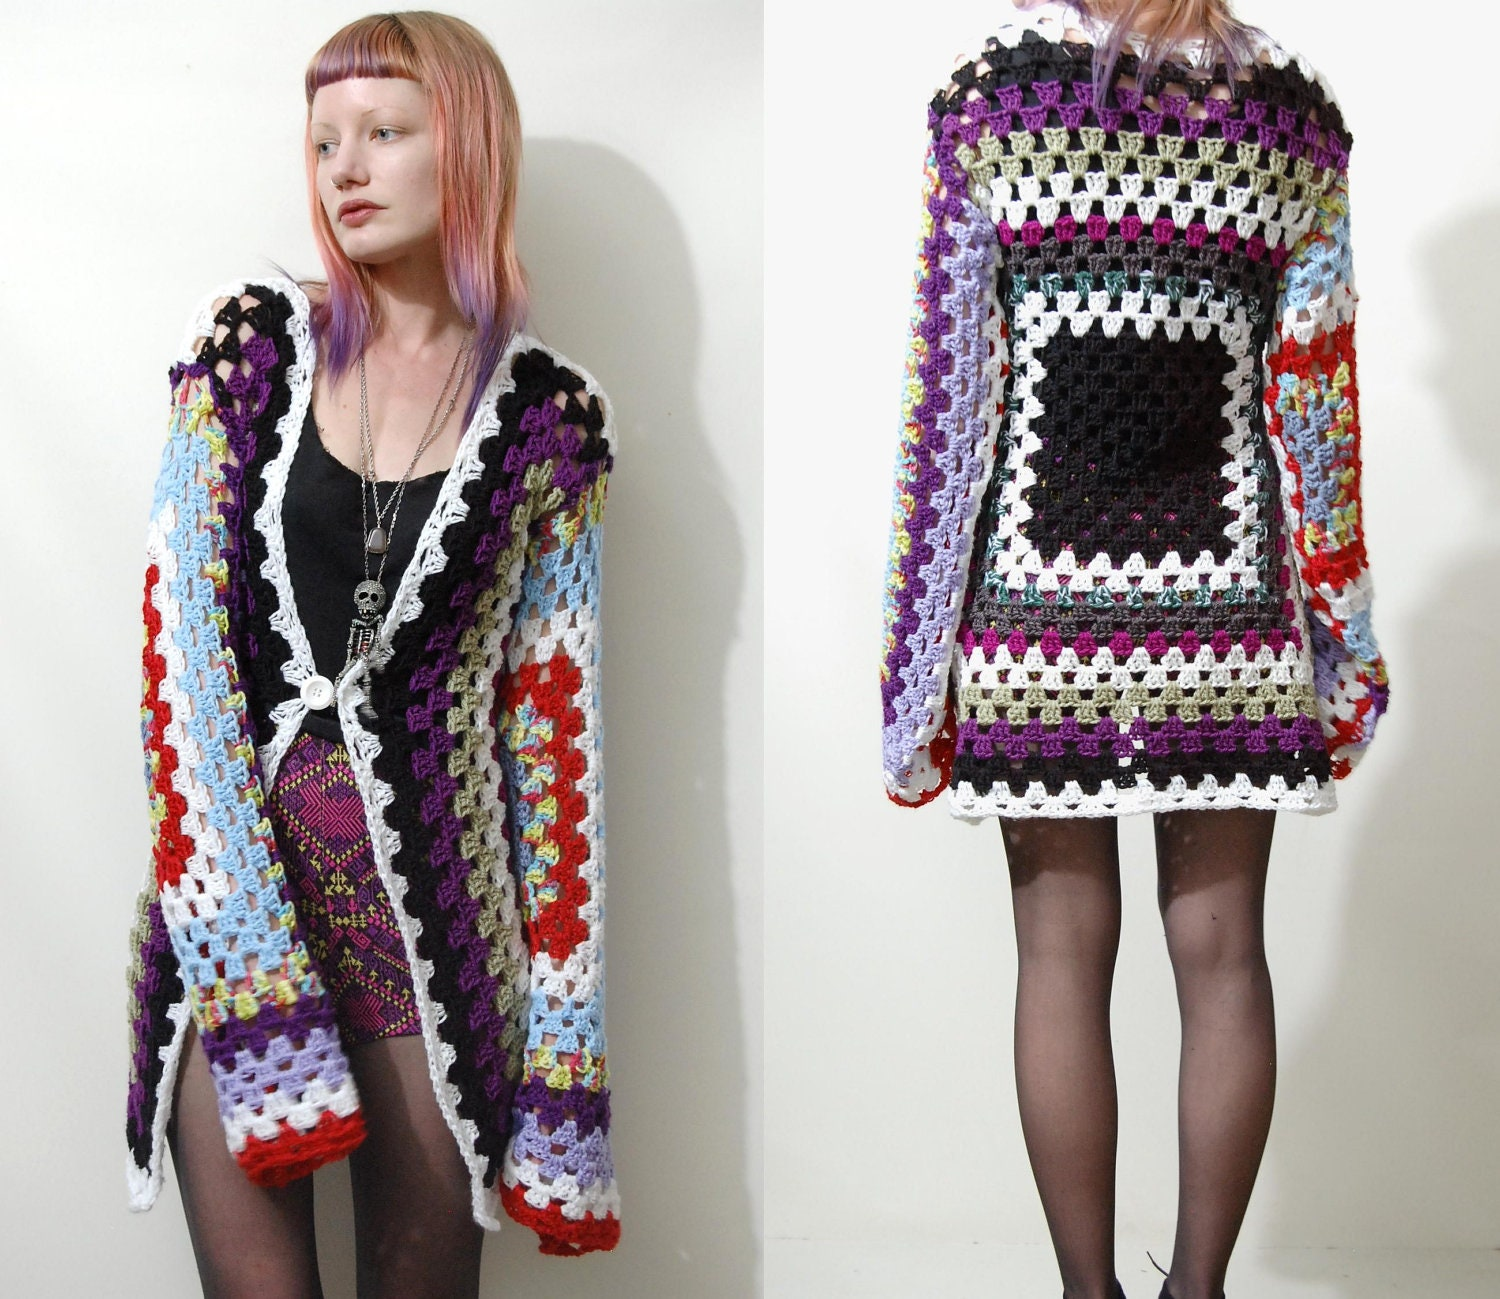 Crochet Granny Square Sweater Pattern : Vintage GRANNY SQUARE Crochet CARDIGAN Jacket Rainbow